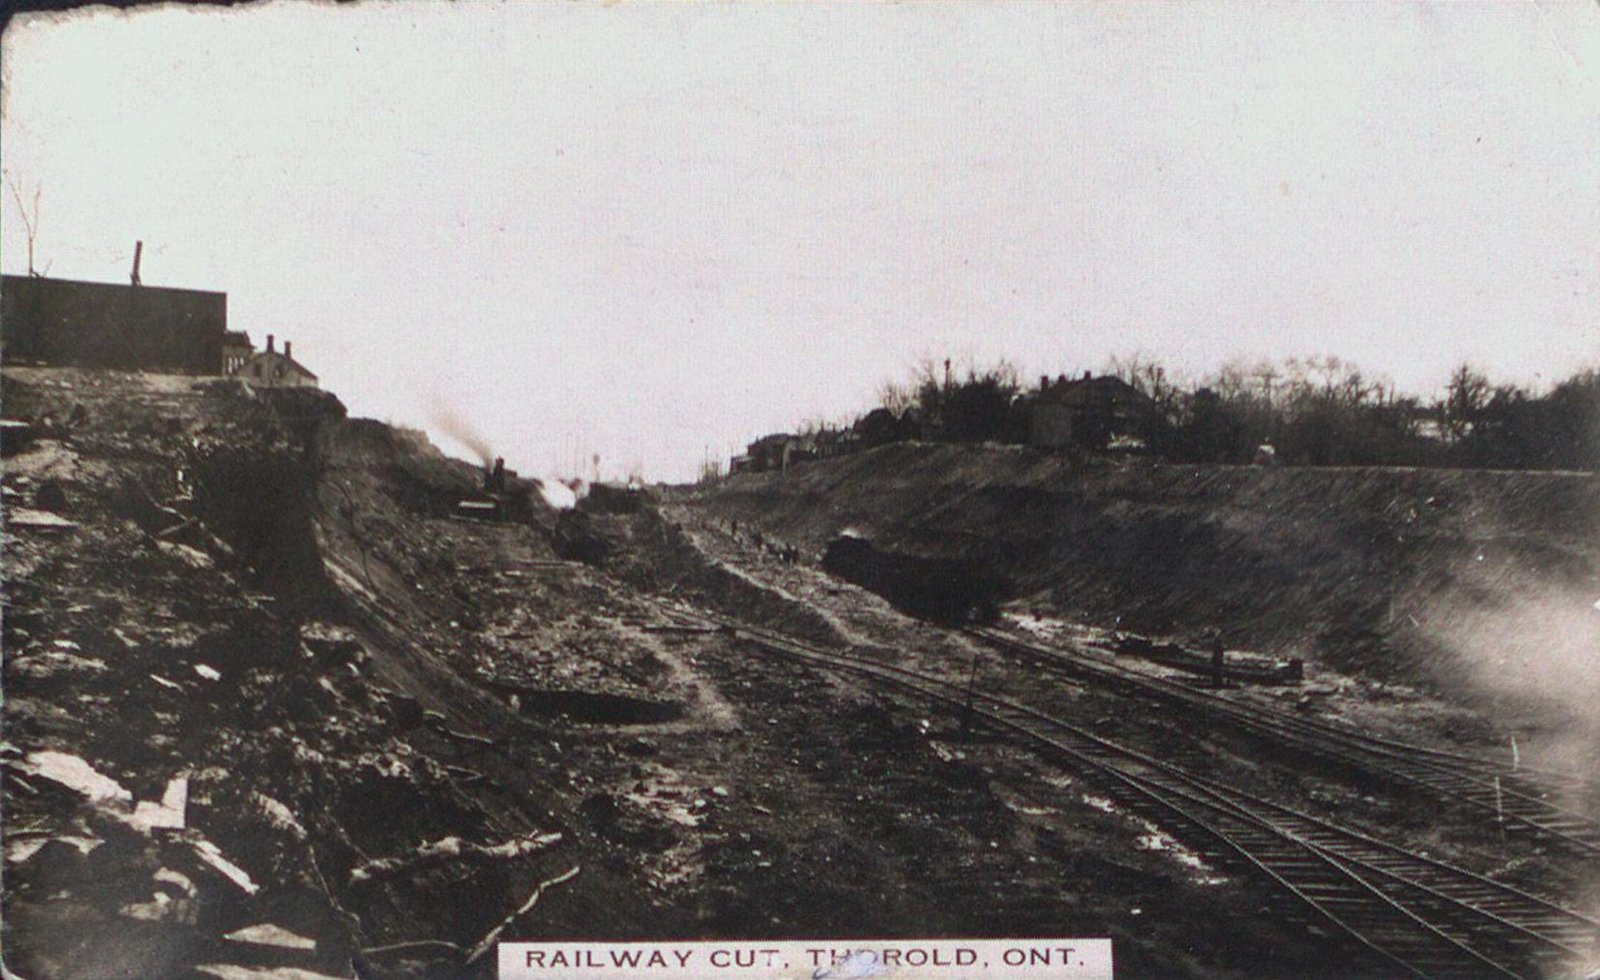 Railway Cut, Thorold